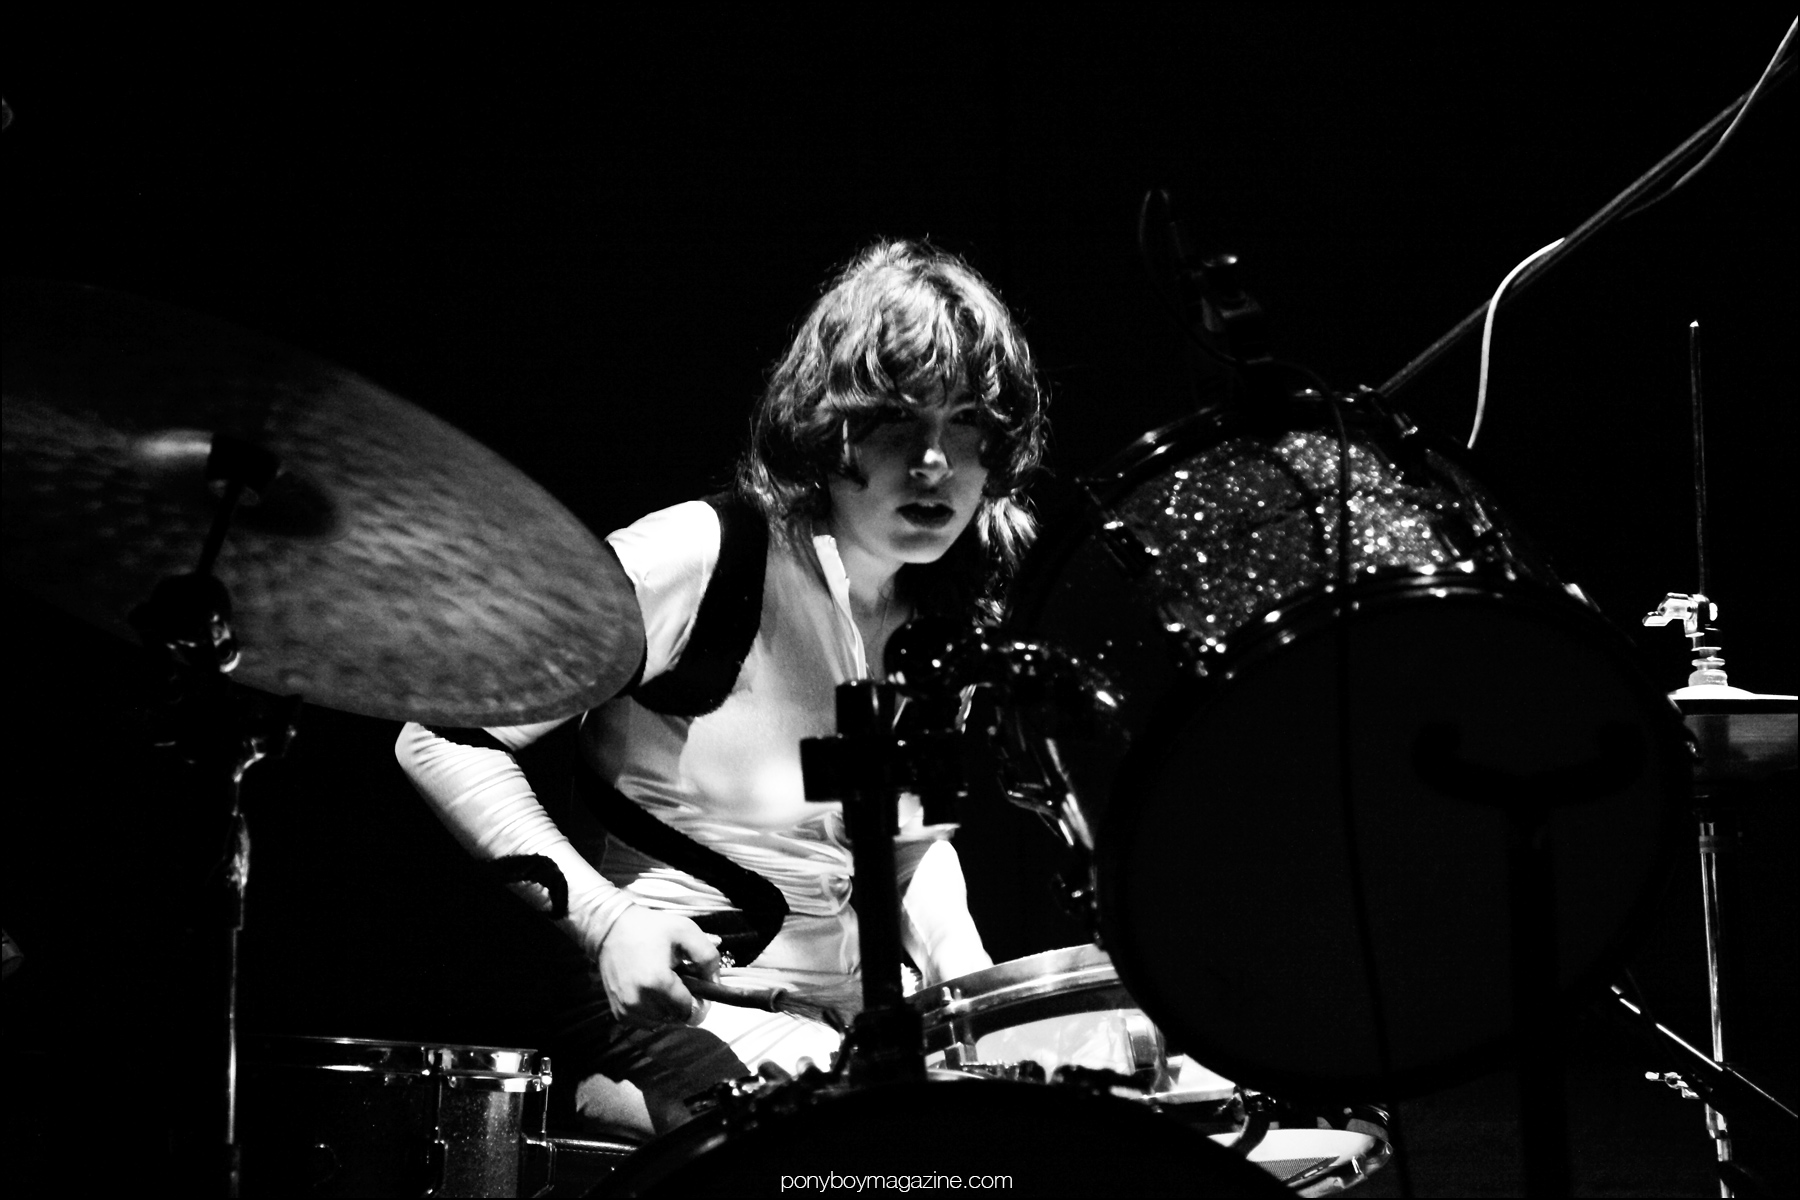 Drummer Daisy Durham photographed onstage at Bowery Ballroom New York by Alexander Thompson for Ponyboy magazine.